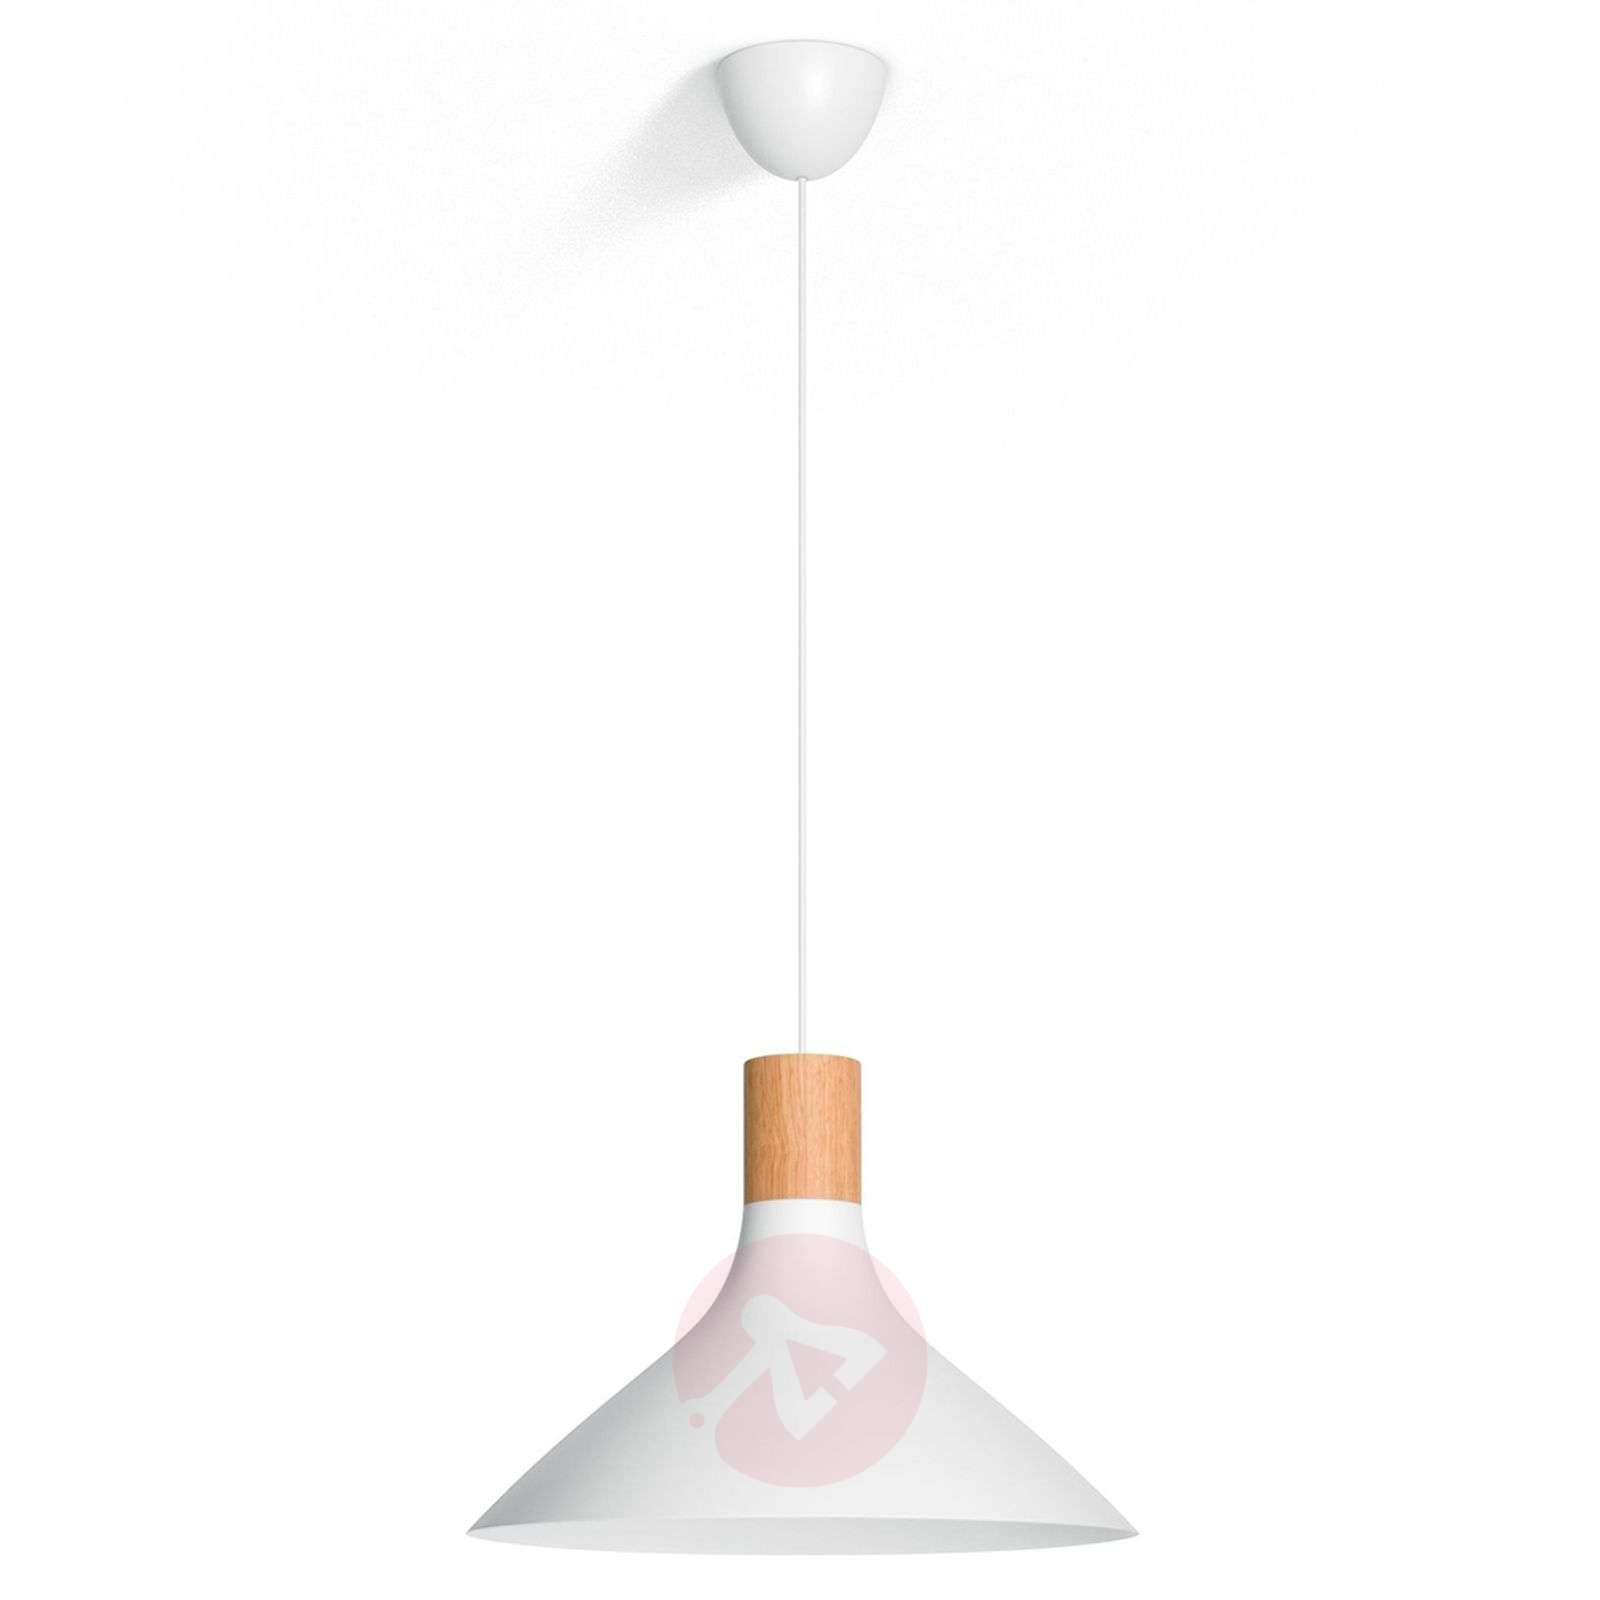 Tunnel modern pendant light with wooden detail-7531844-01